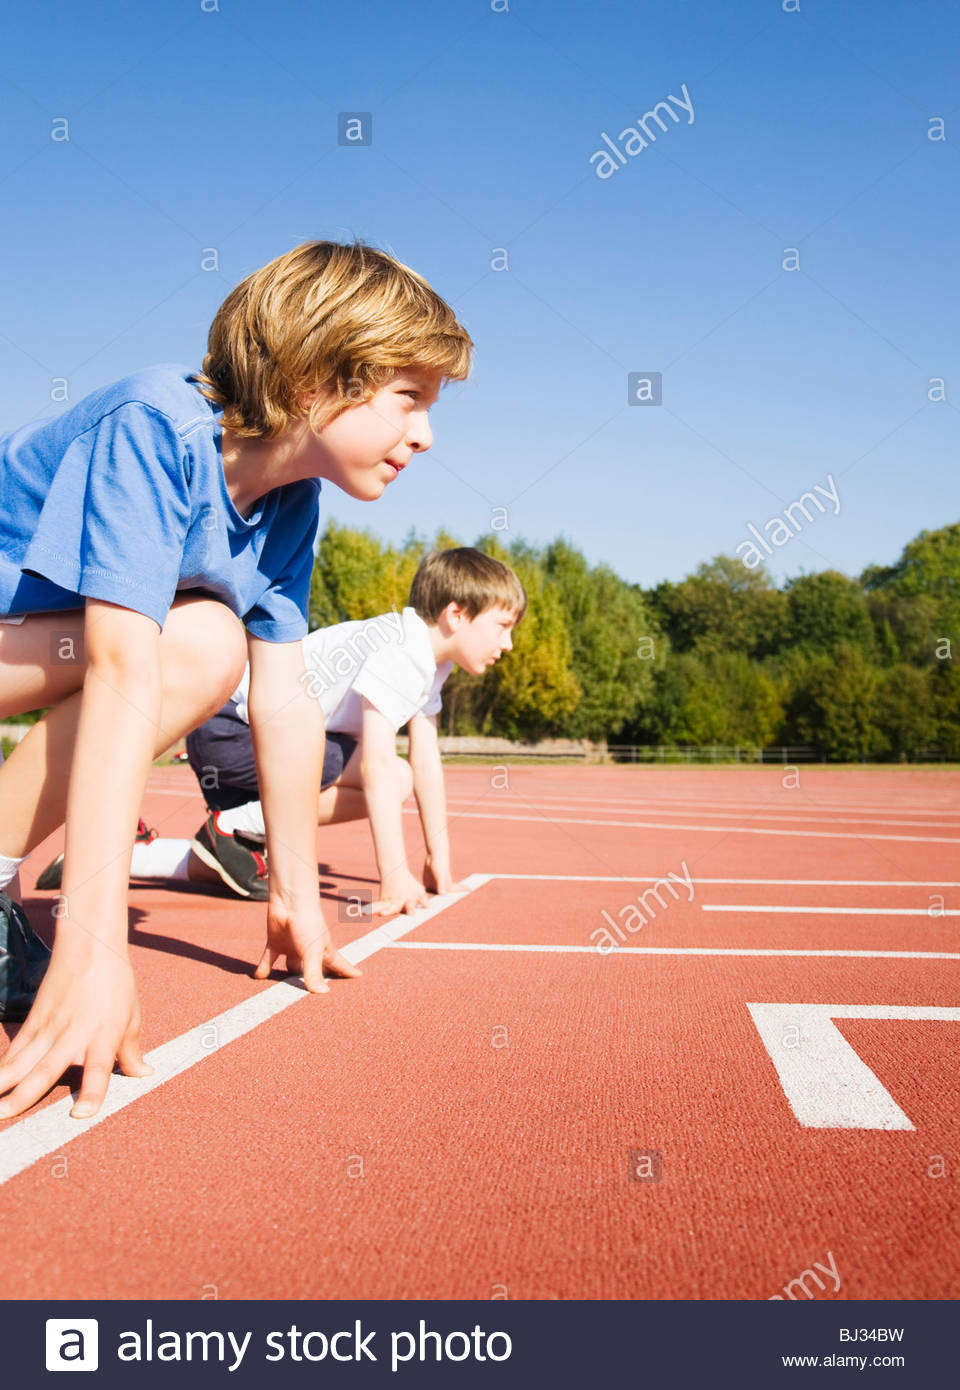 Boys at race Track Start Position - Stock Image